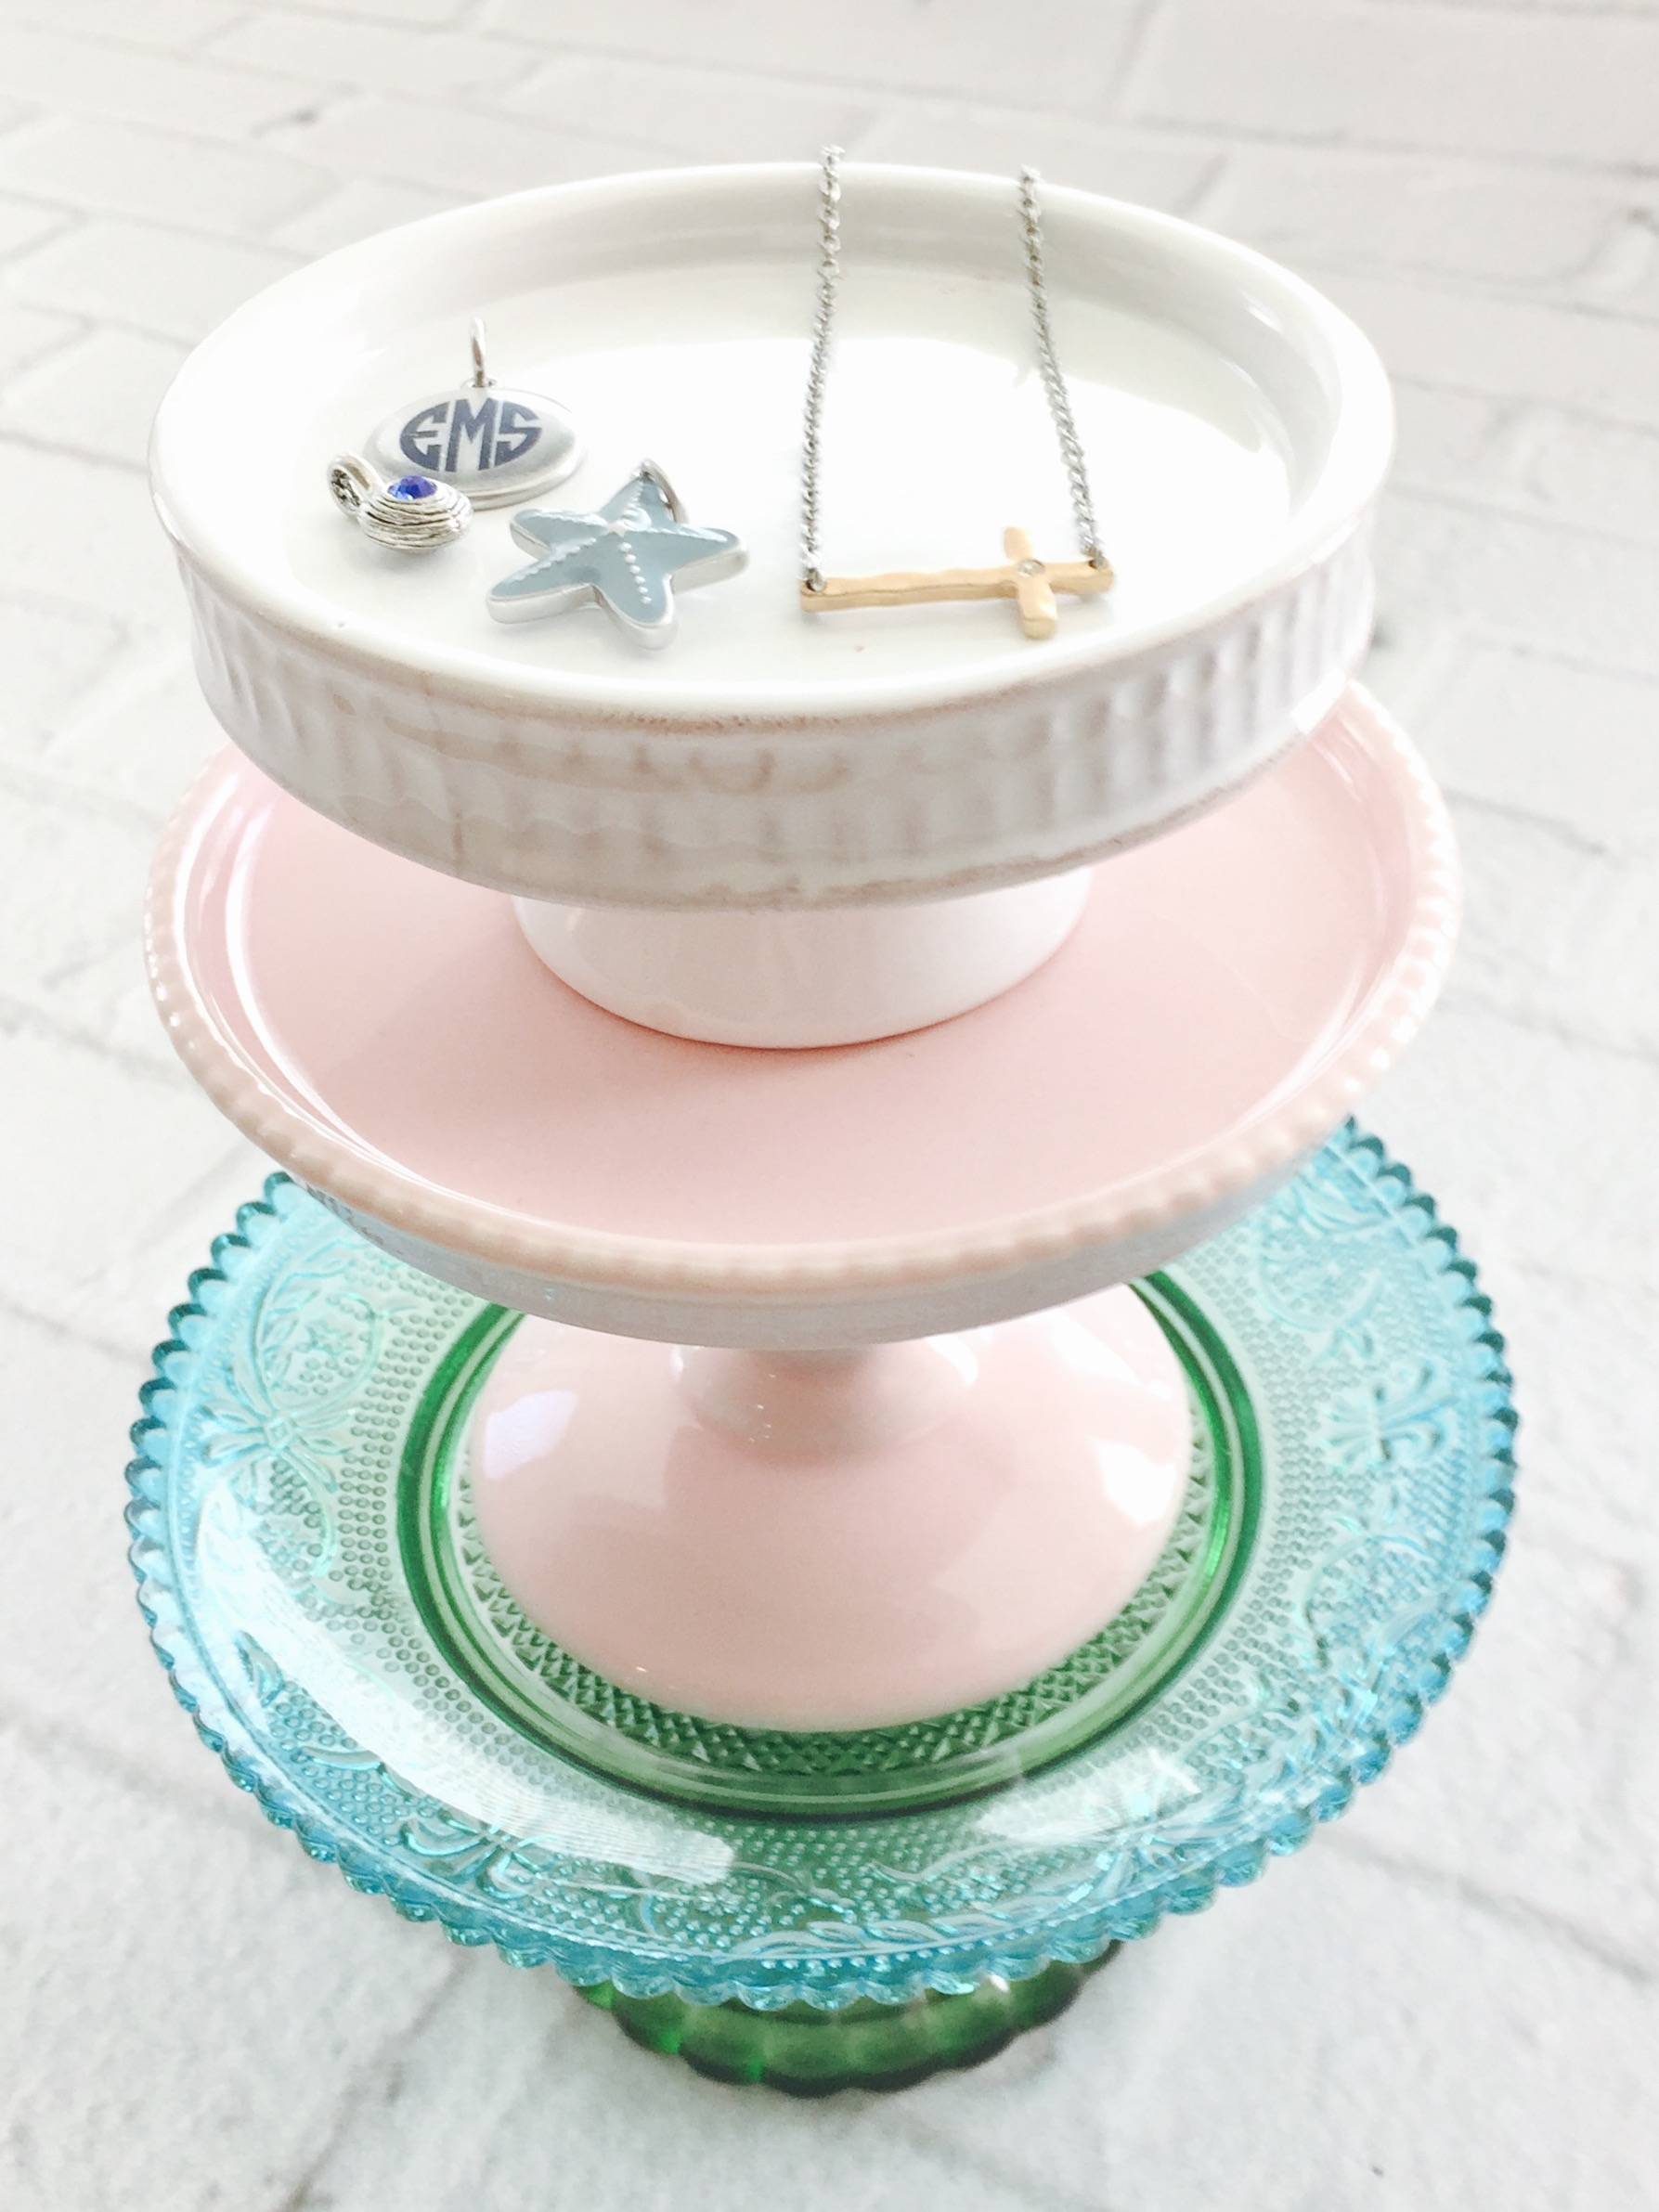 ... or night stand to catch loose earrings rings or charms. Inexpensive and easy to find! Here are a few of my favorites mini\u0027s! (oh a link to my favorite ... & Mini Cake Stand Displays - Janet Kinkade